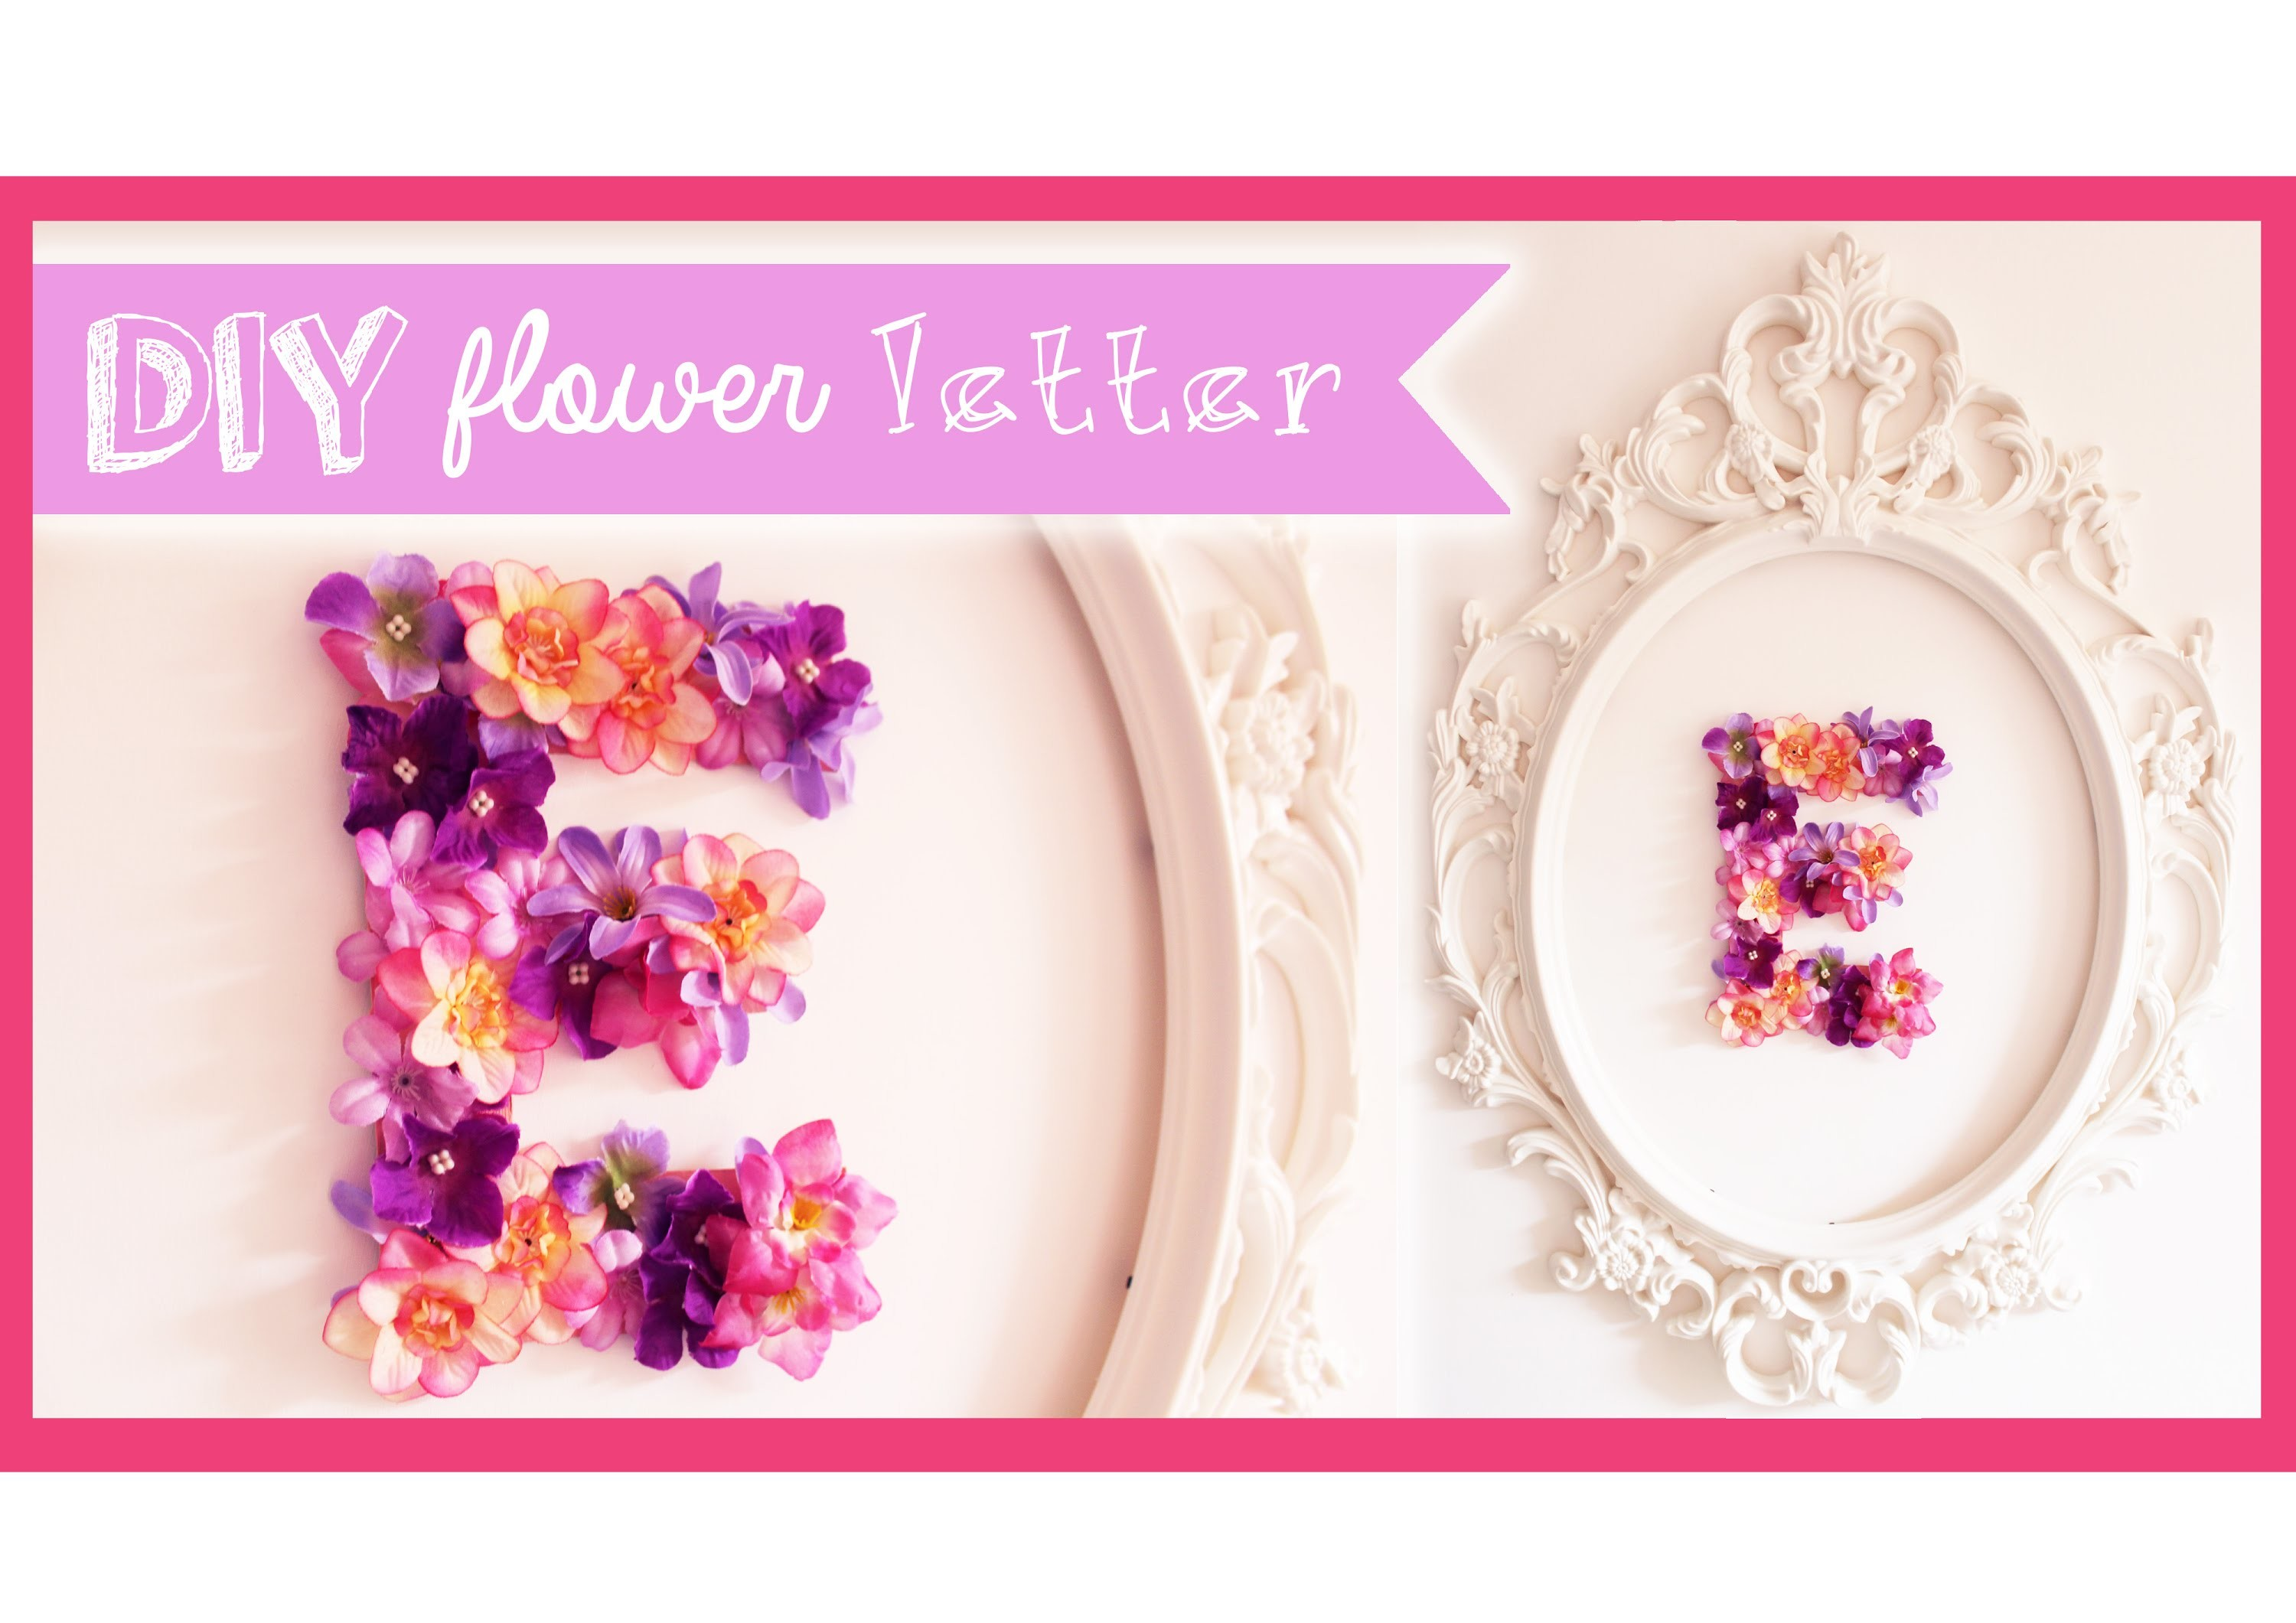 HOME&DECOR: Flower Letter DIY ❀ (Coll. PamelaJuicyMakeup)